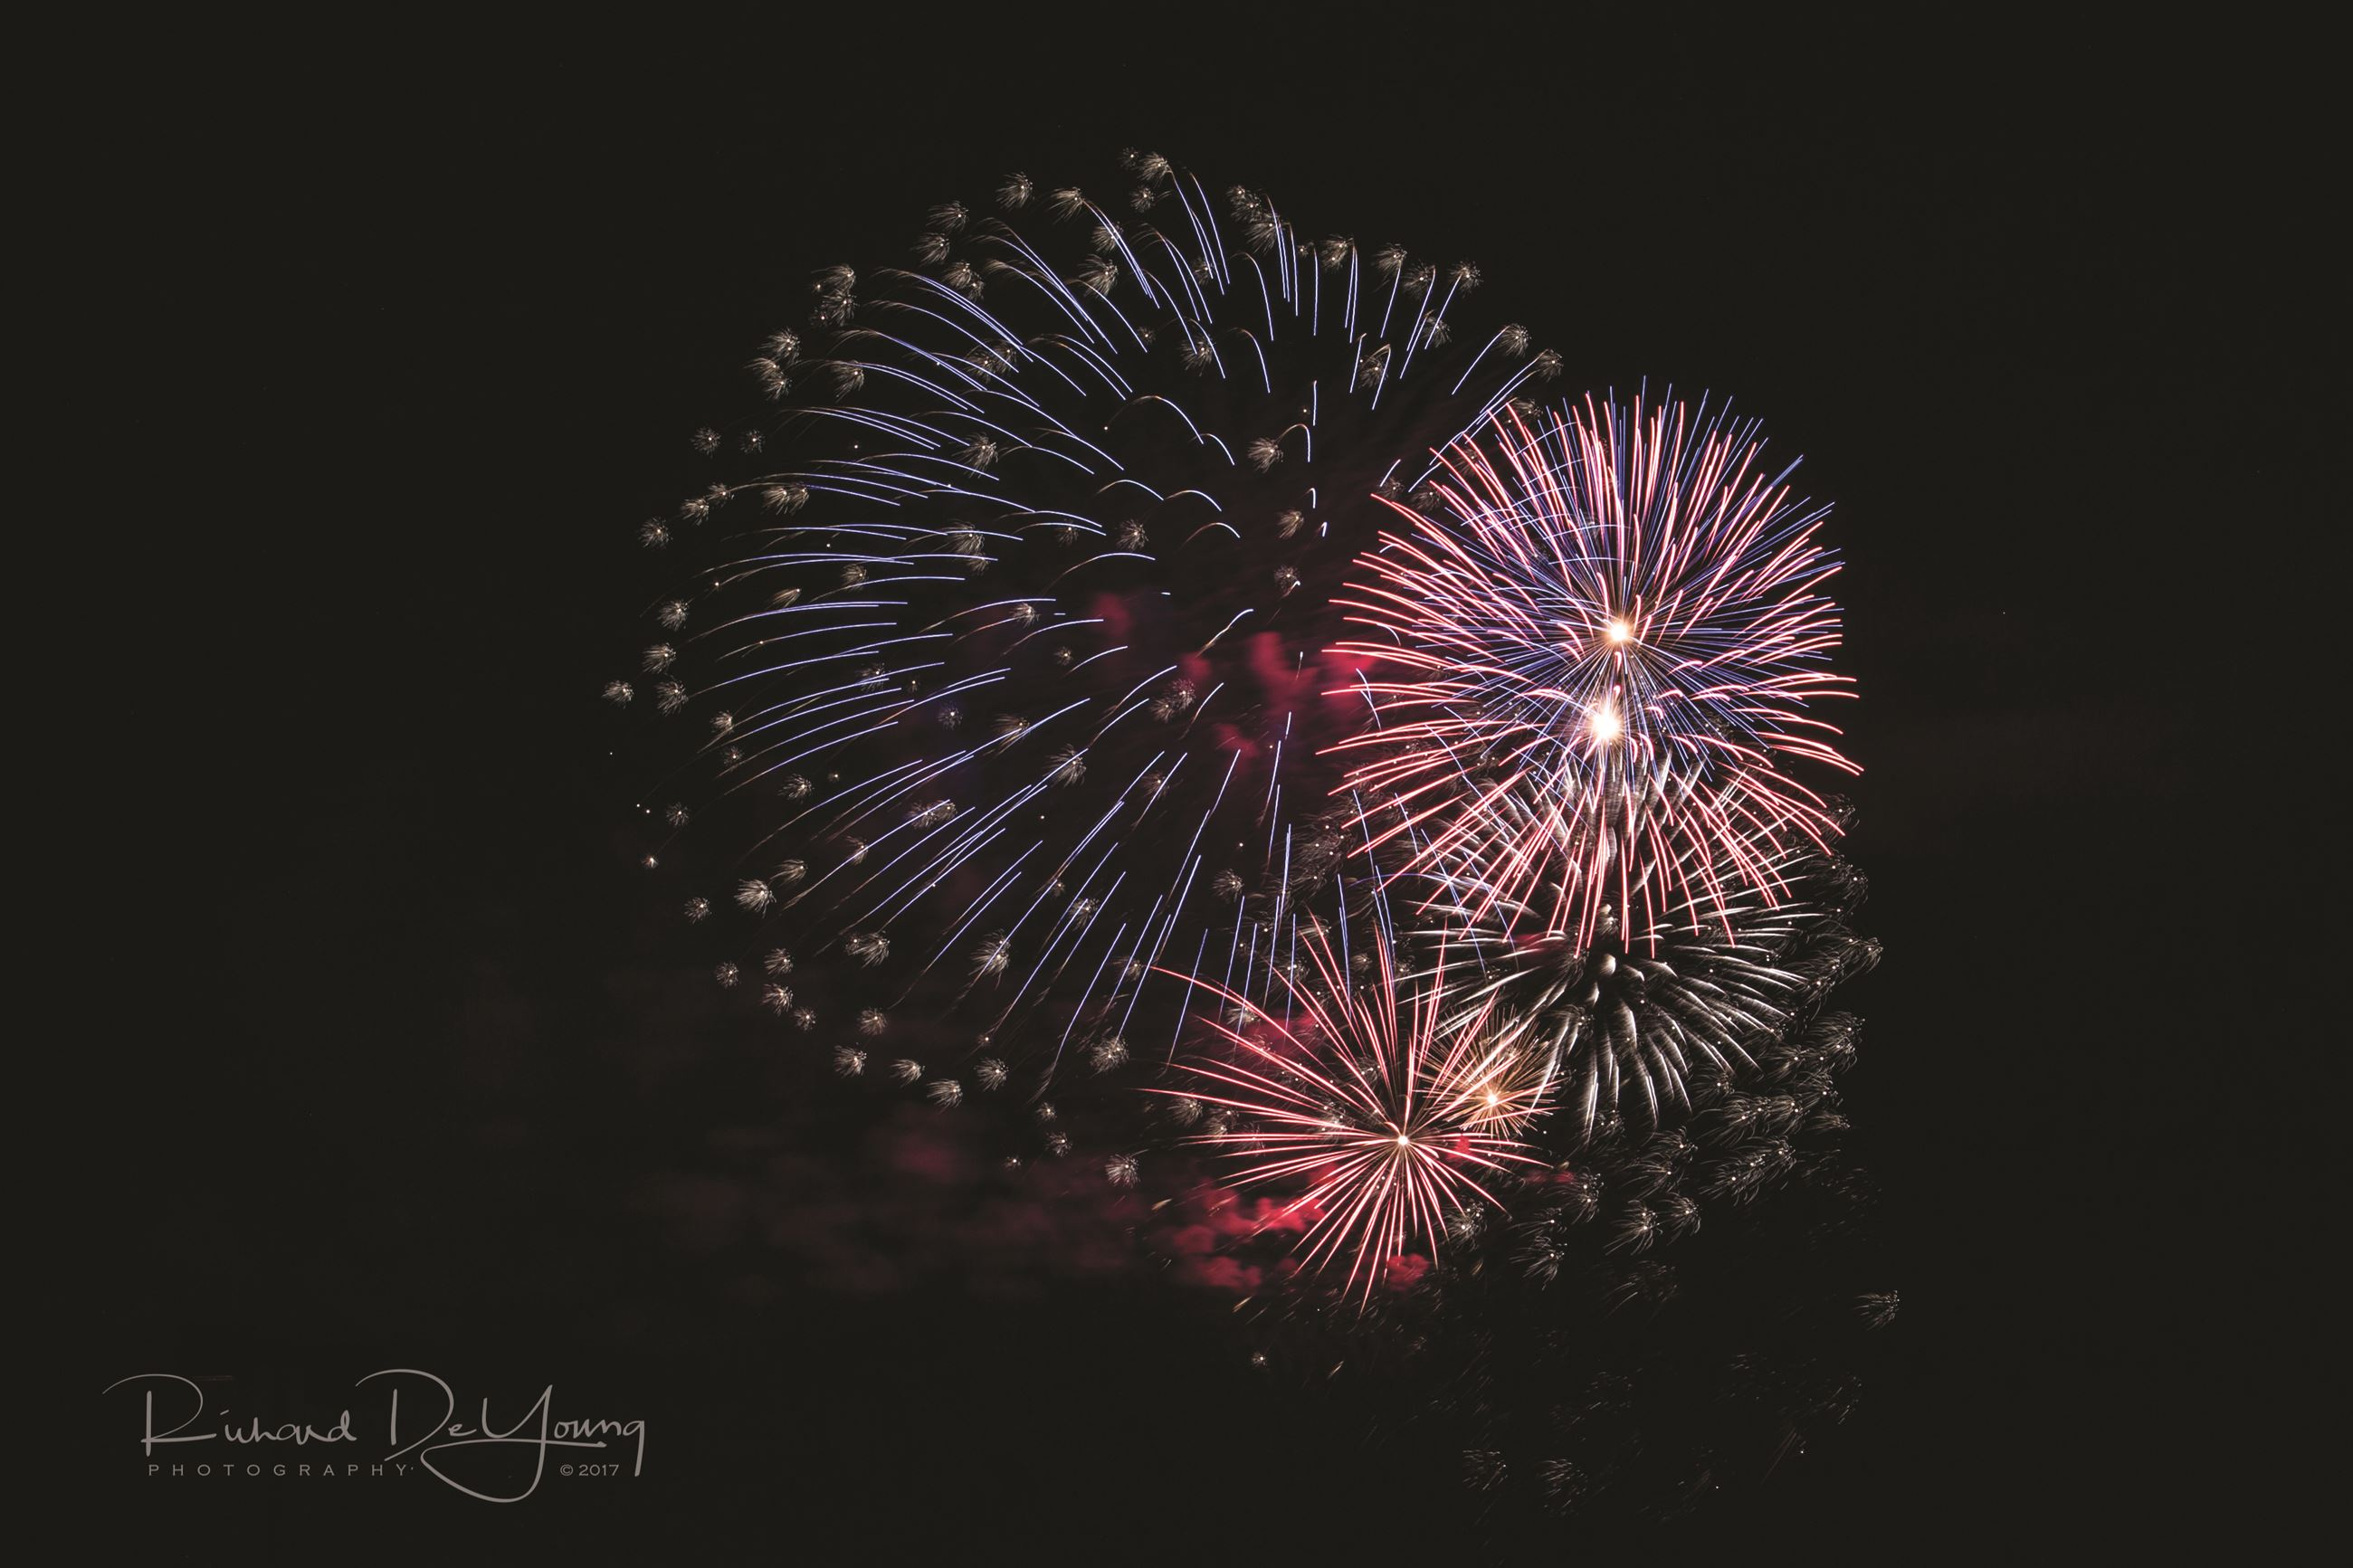 Fireworks by Richard DeYoung